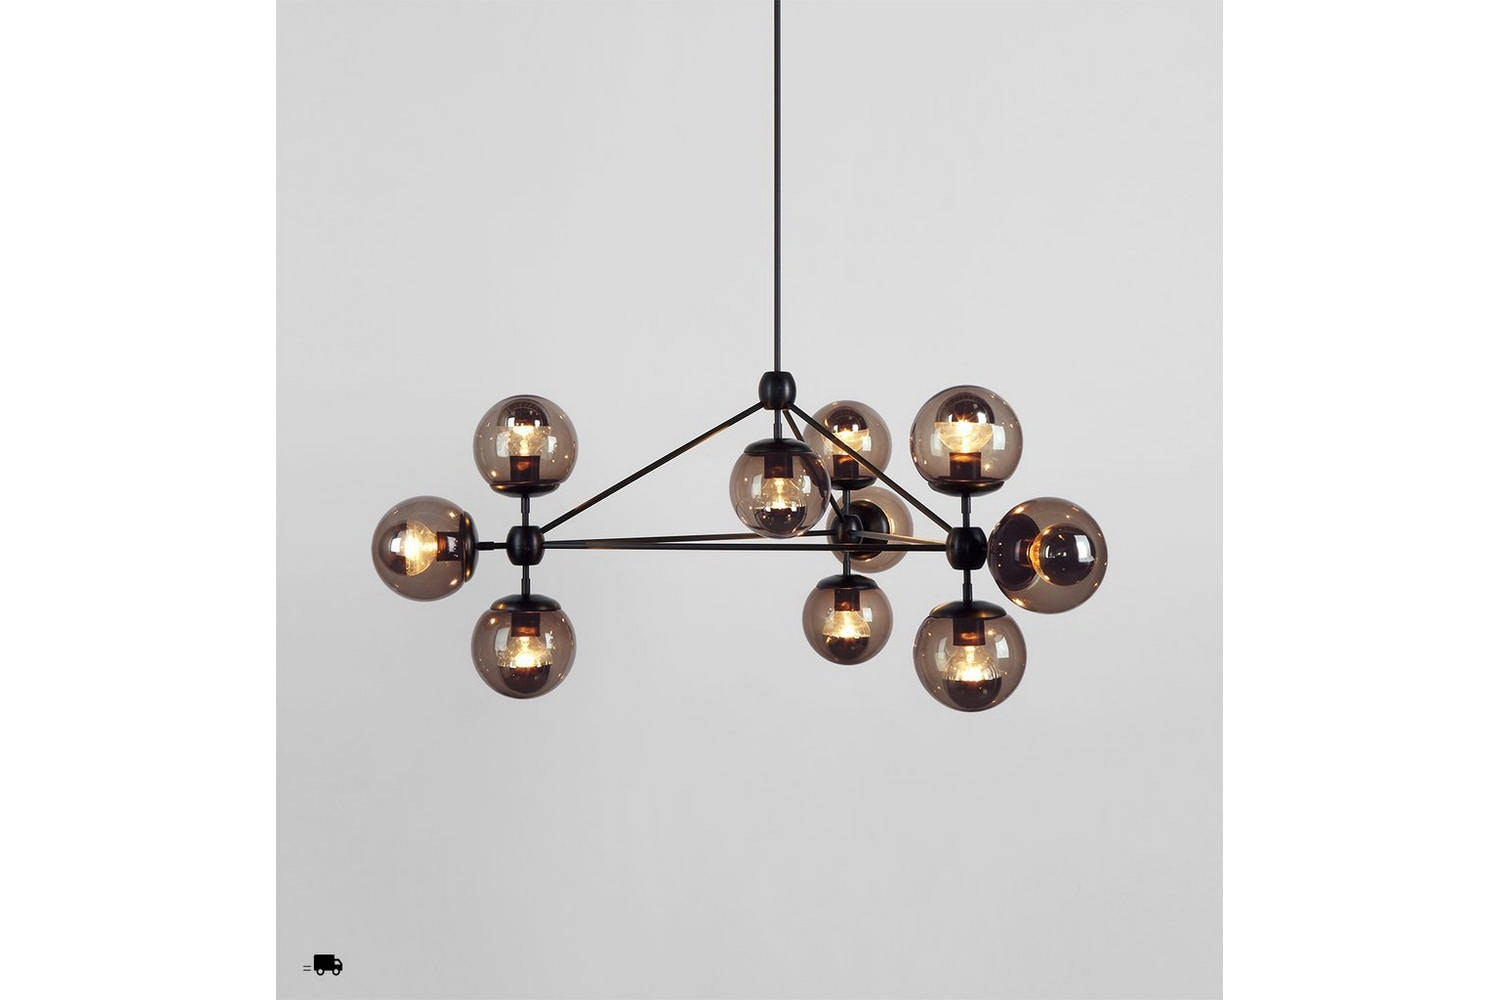 Modo Chandelier - 3 Sided 10 Globes by Jason Miller for Roll & Hill